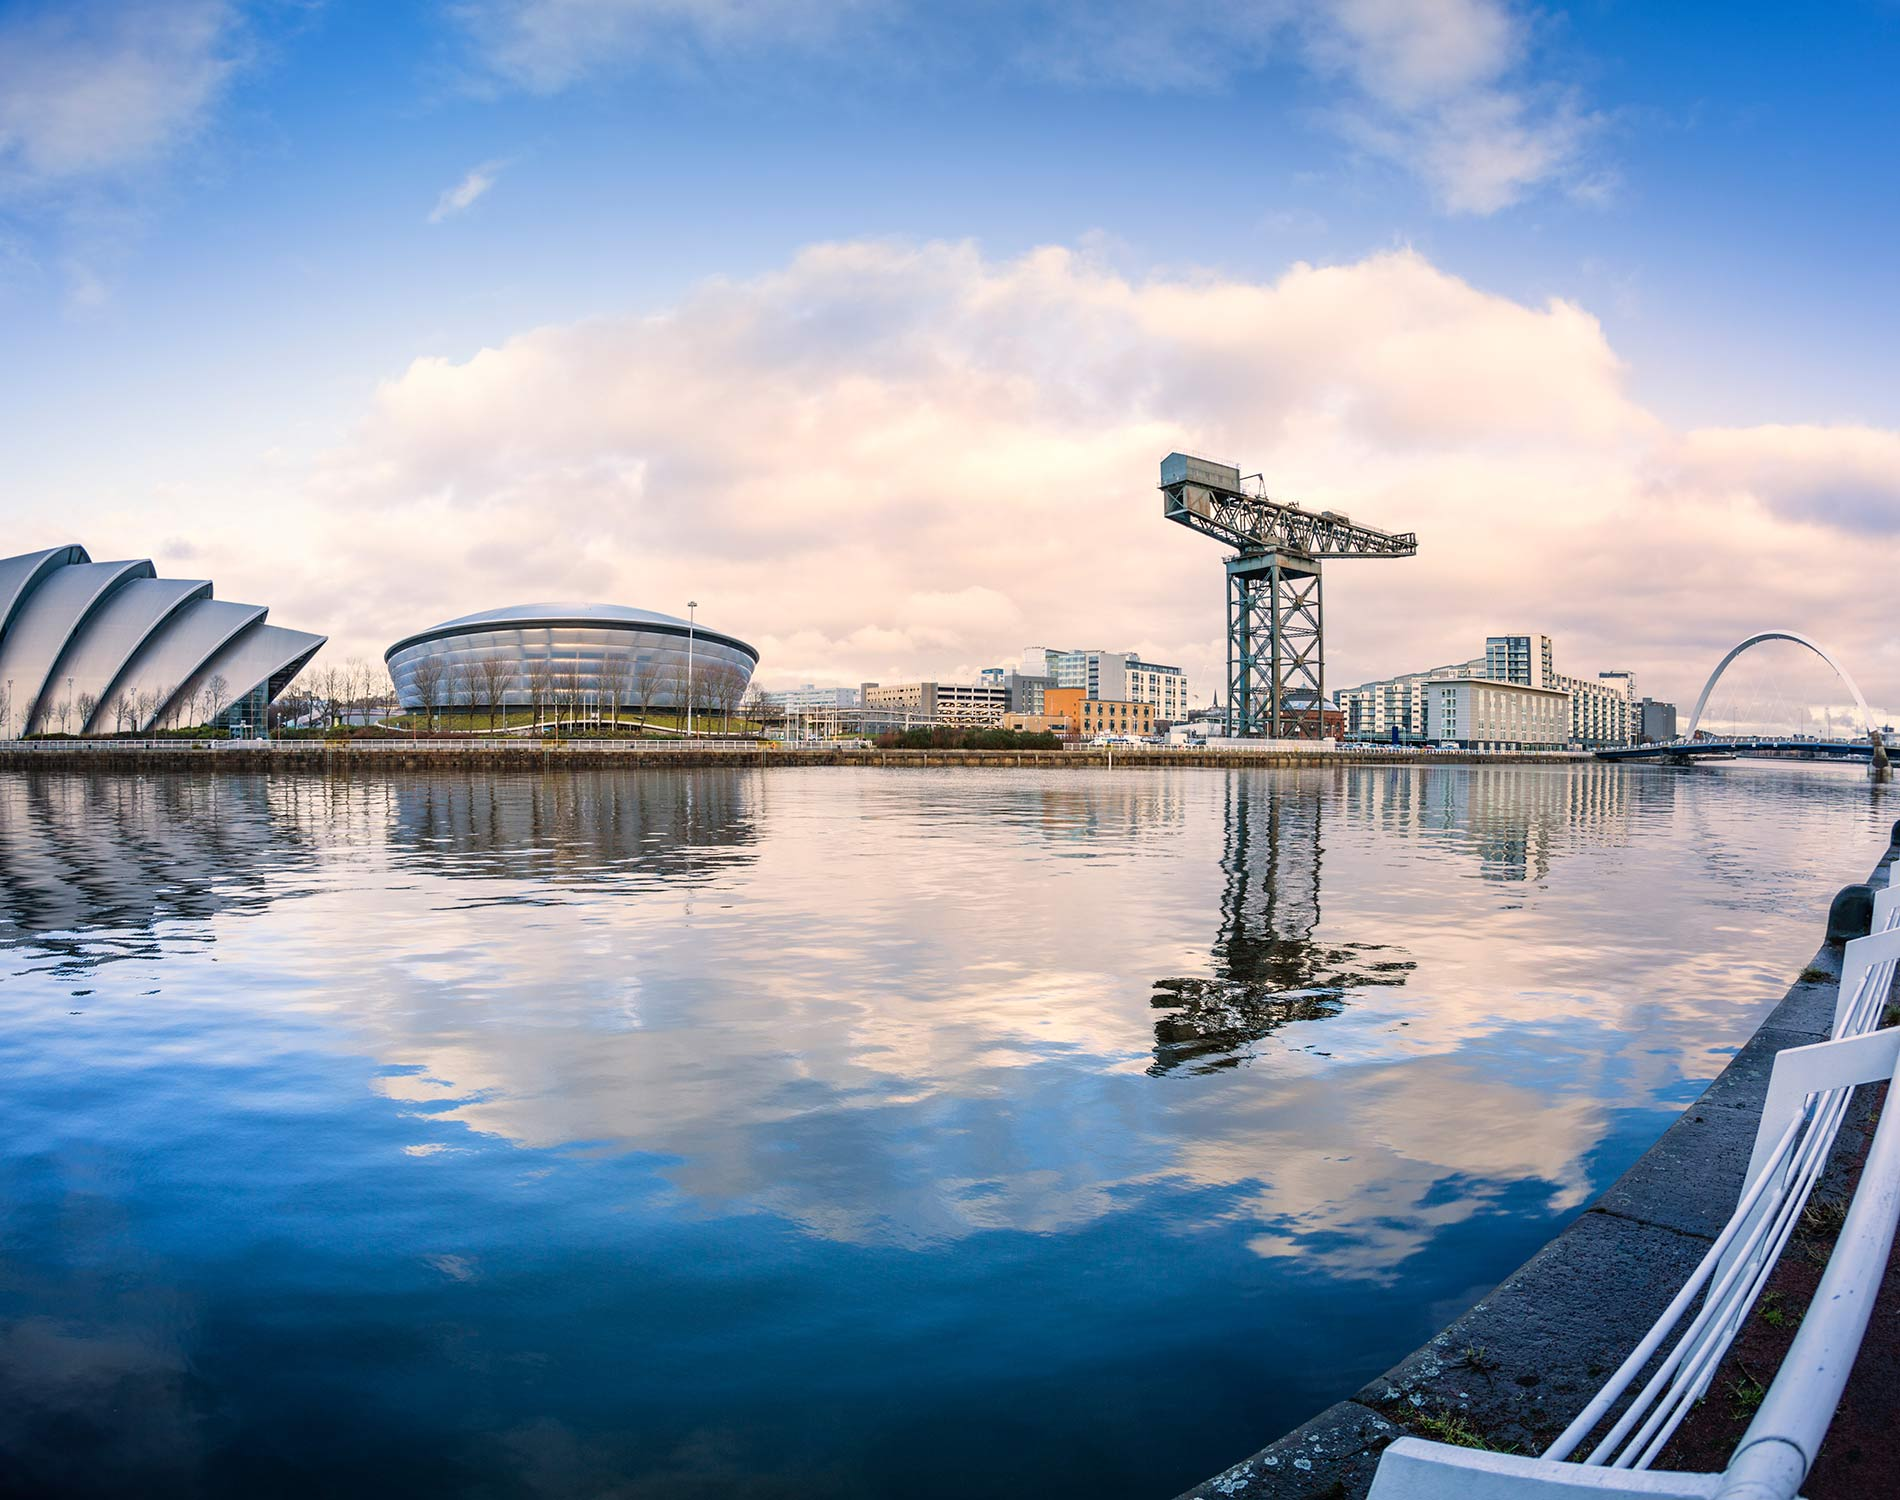 /-/media/images/website/background-images/offices/glasgow/glasgow-the-river-clyde.ashx